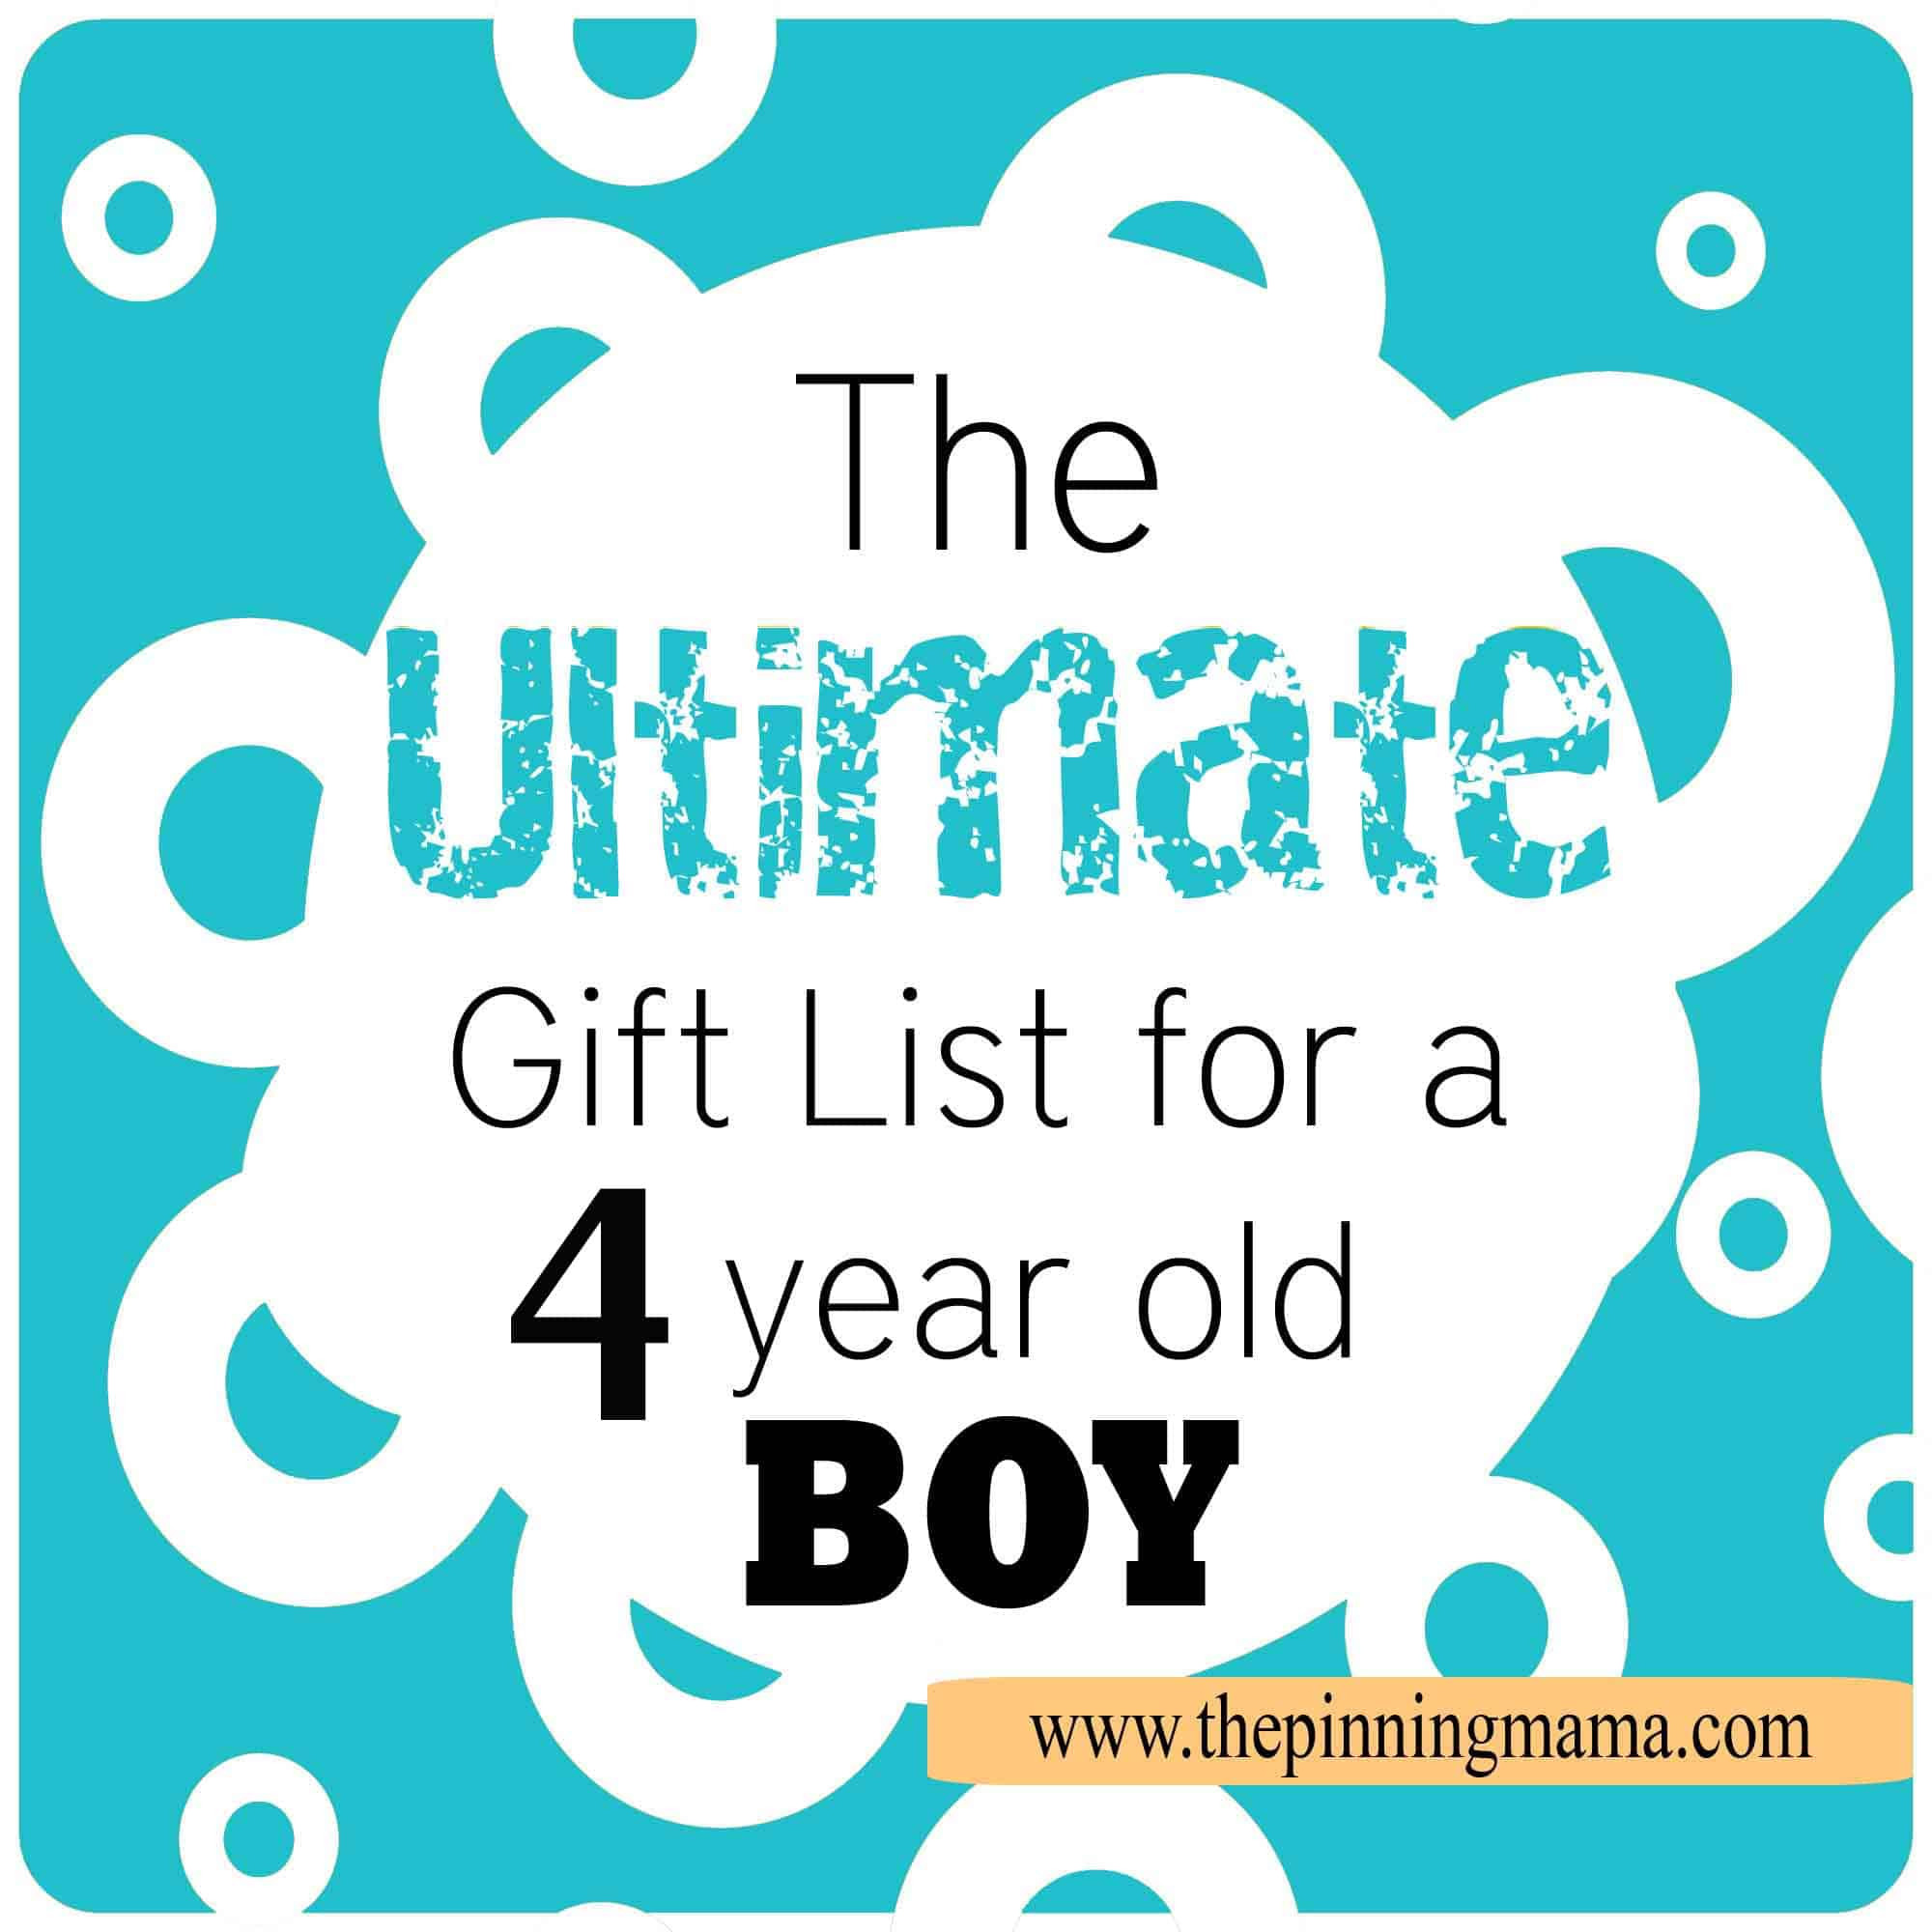 Best ideas about 4 Year Old Birthday Gift Ideas . Save or Pin The Best Gift Ideas for a 4 Year Old Boy Now.